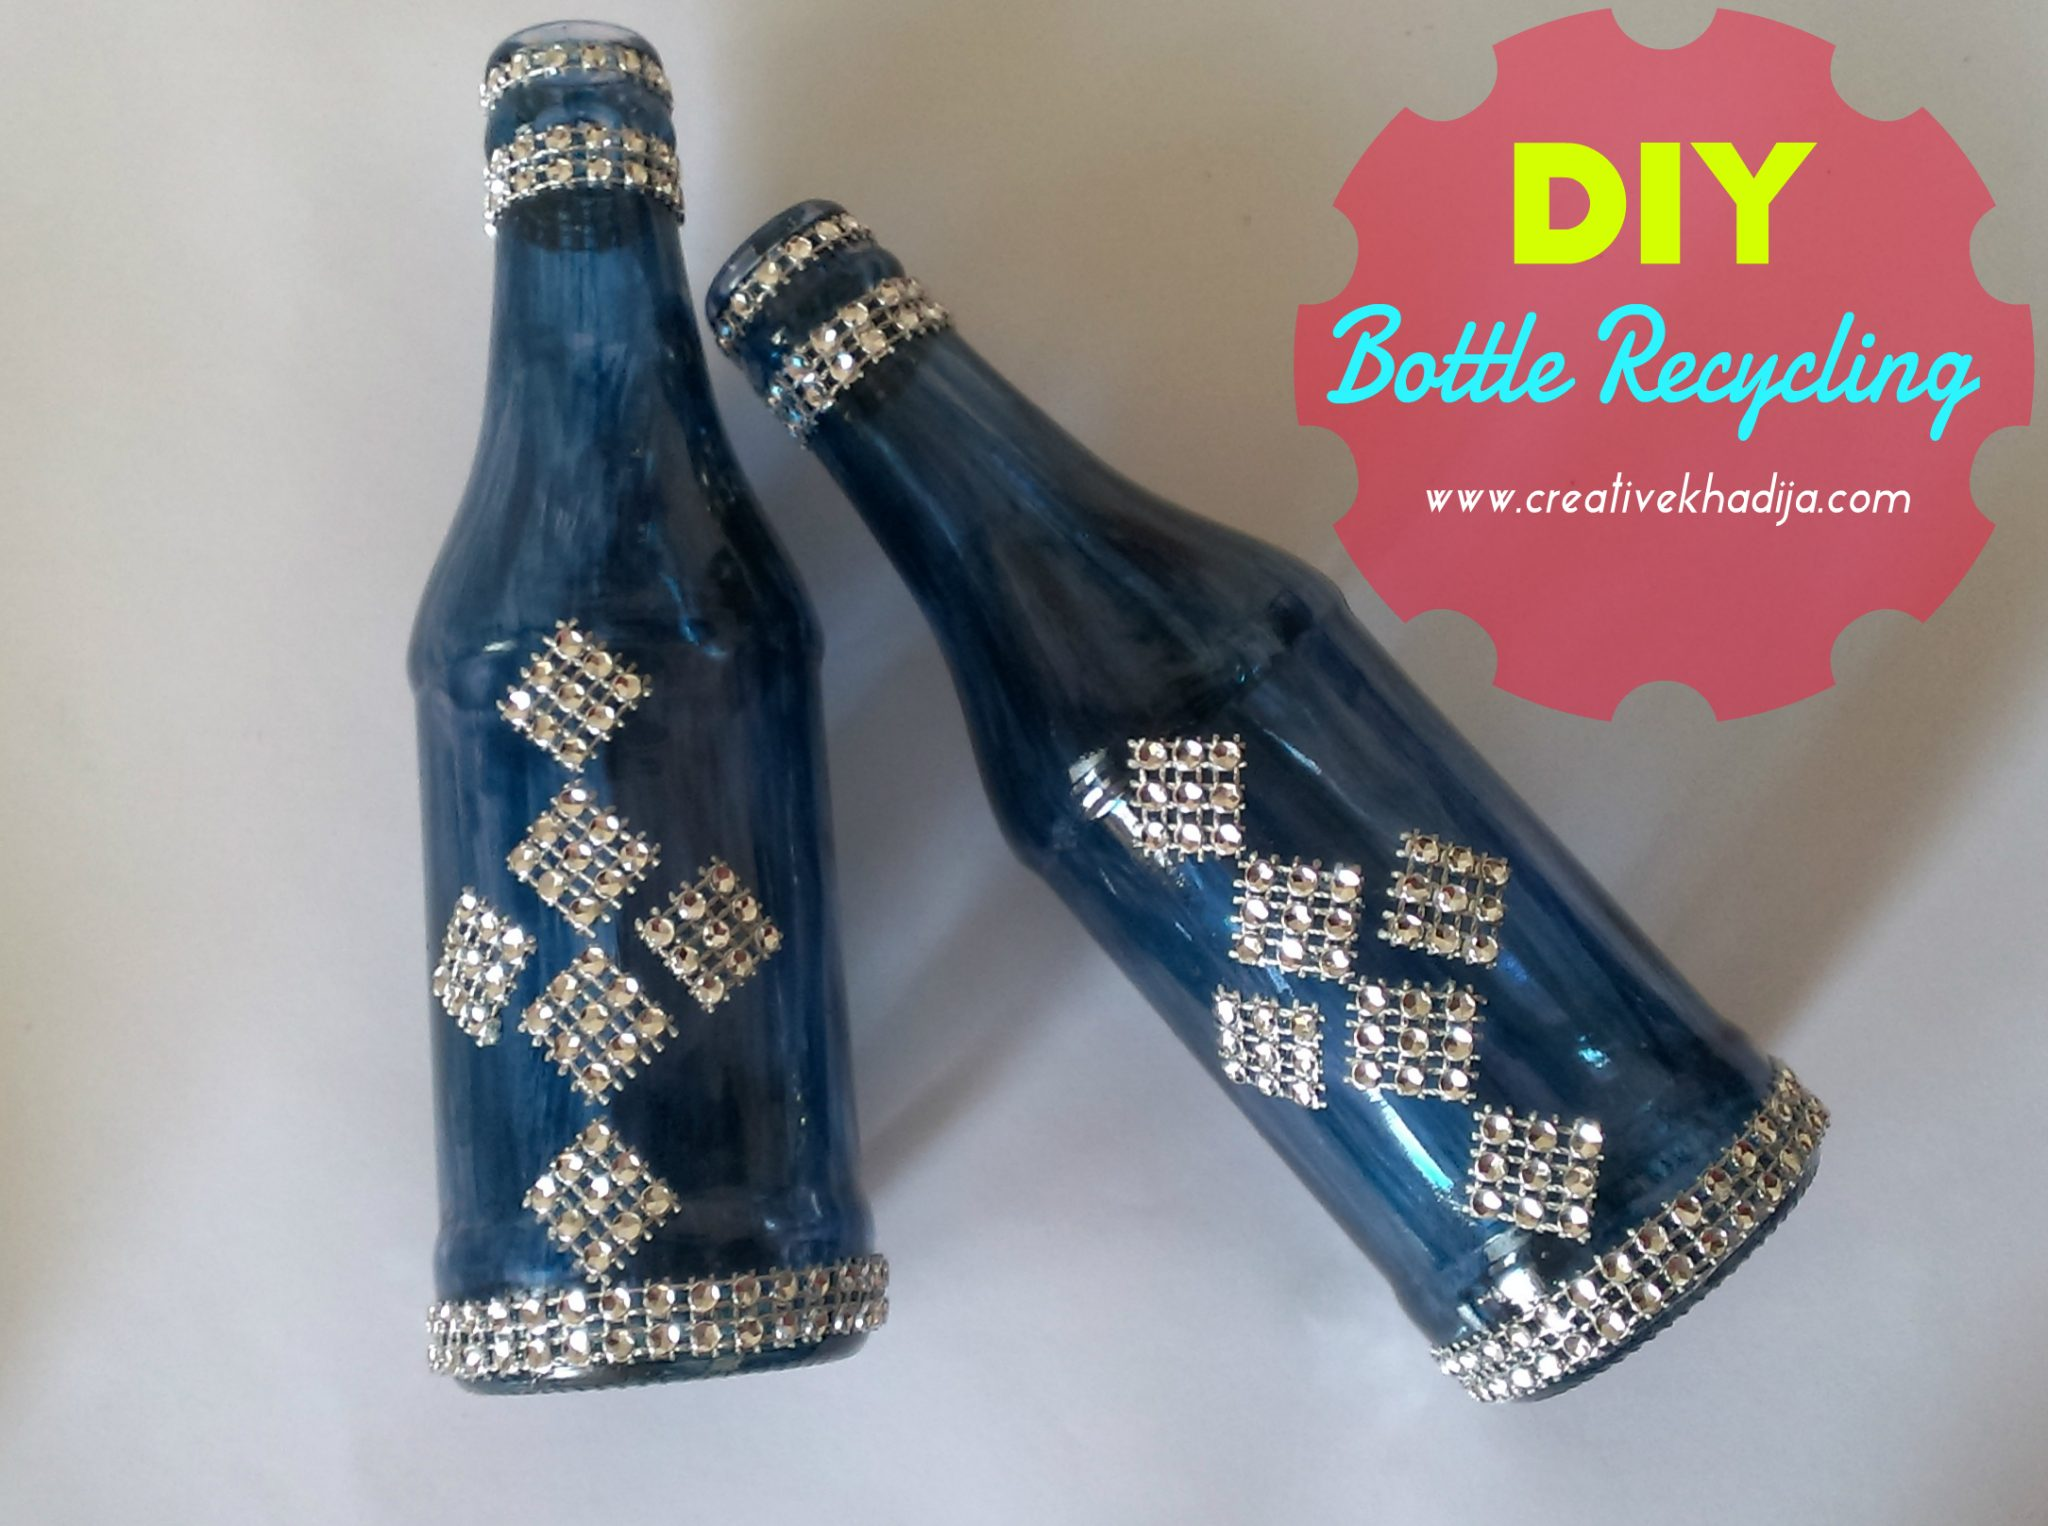 Diy glass painted bottles decoration recycling ideas for How to paint glass bottles